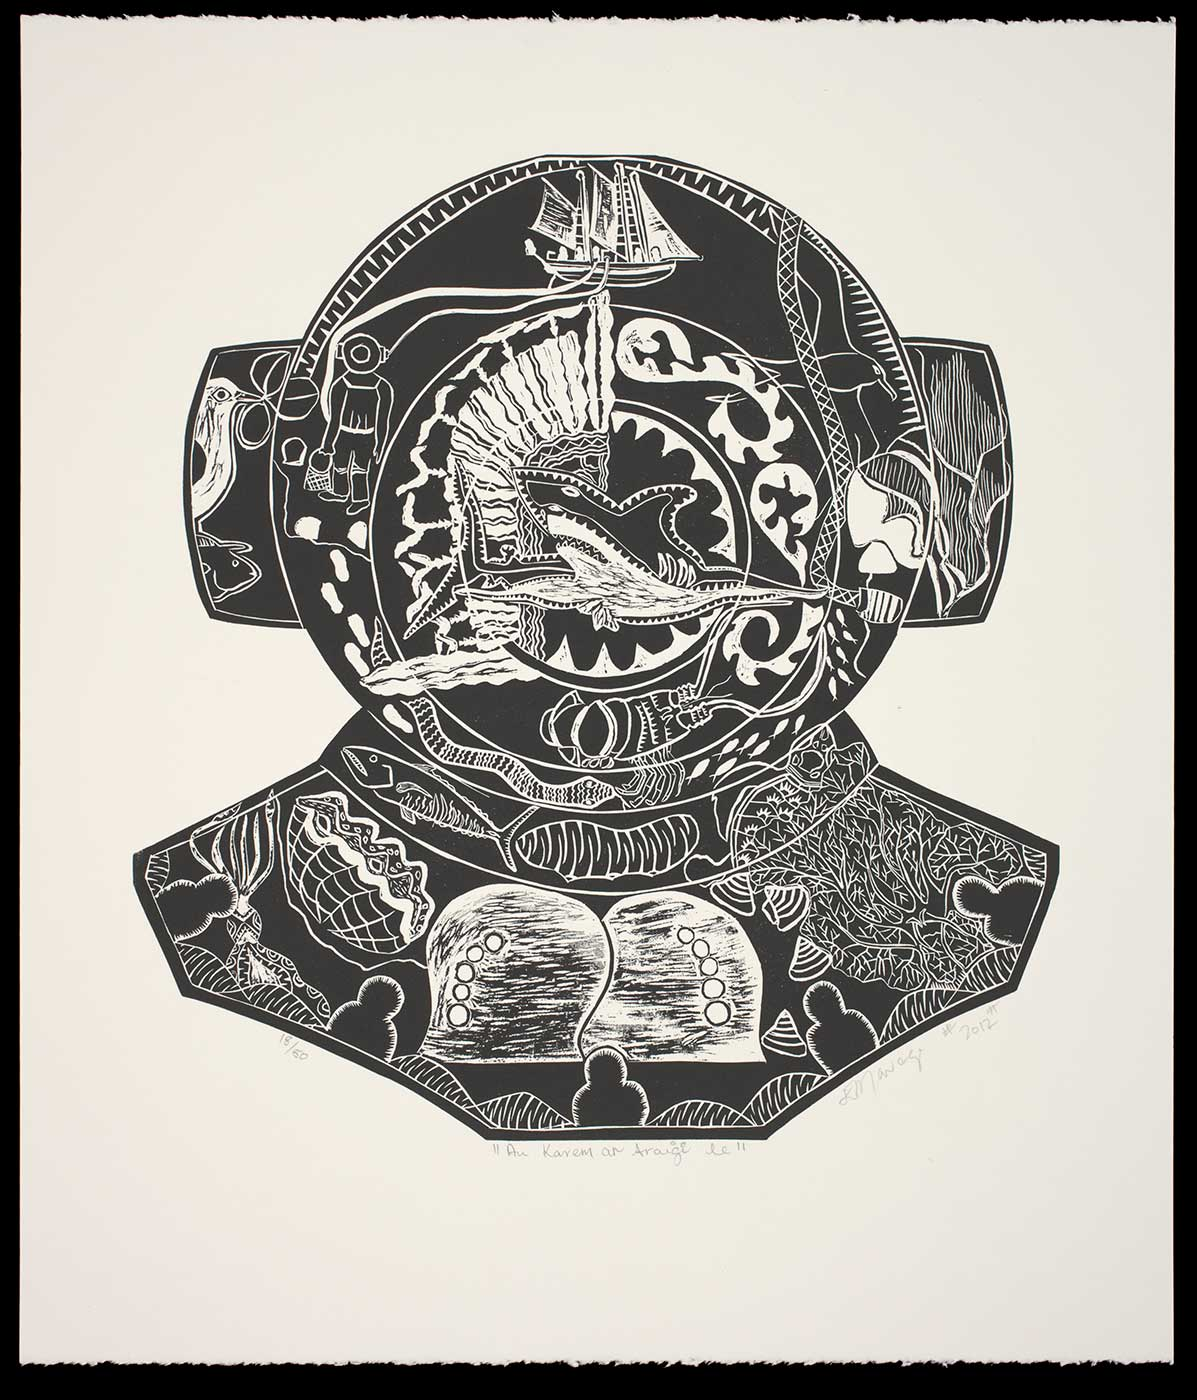 Black and white artwork depicting a diver's helmet - click to view larger image